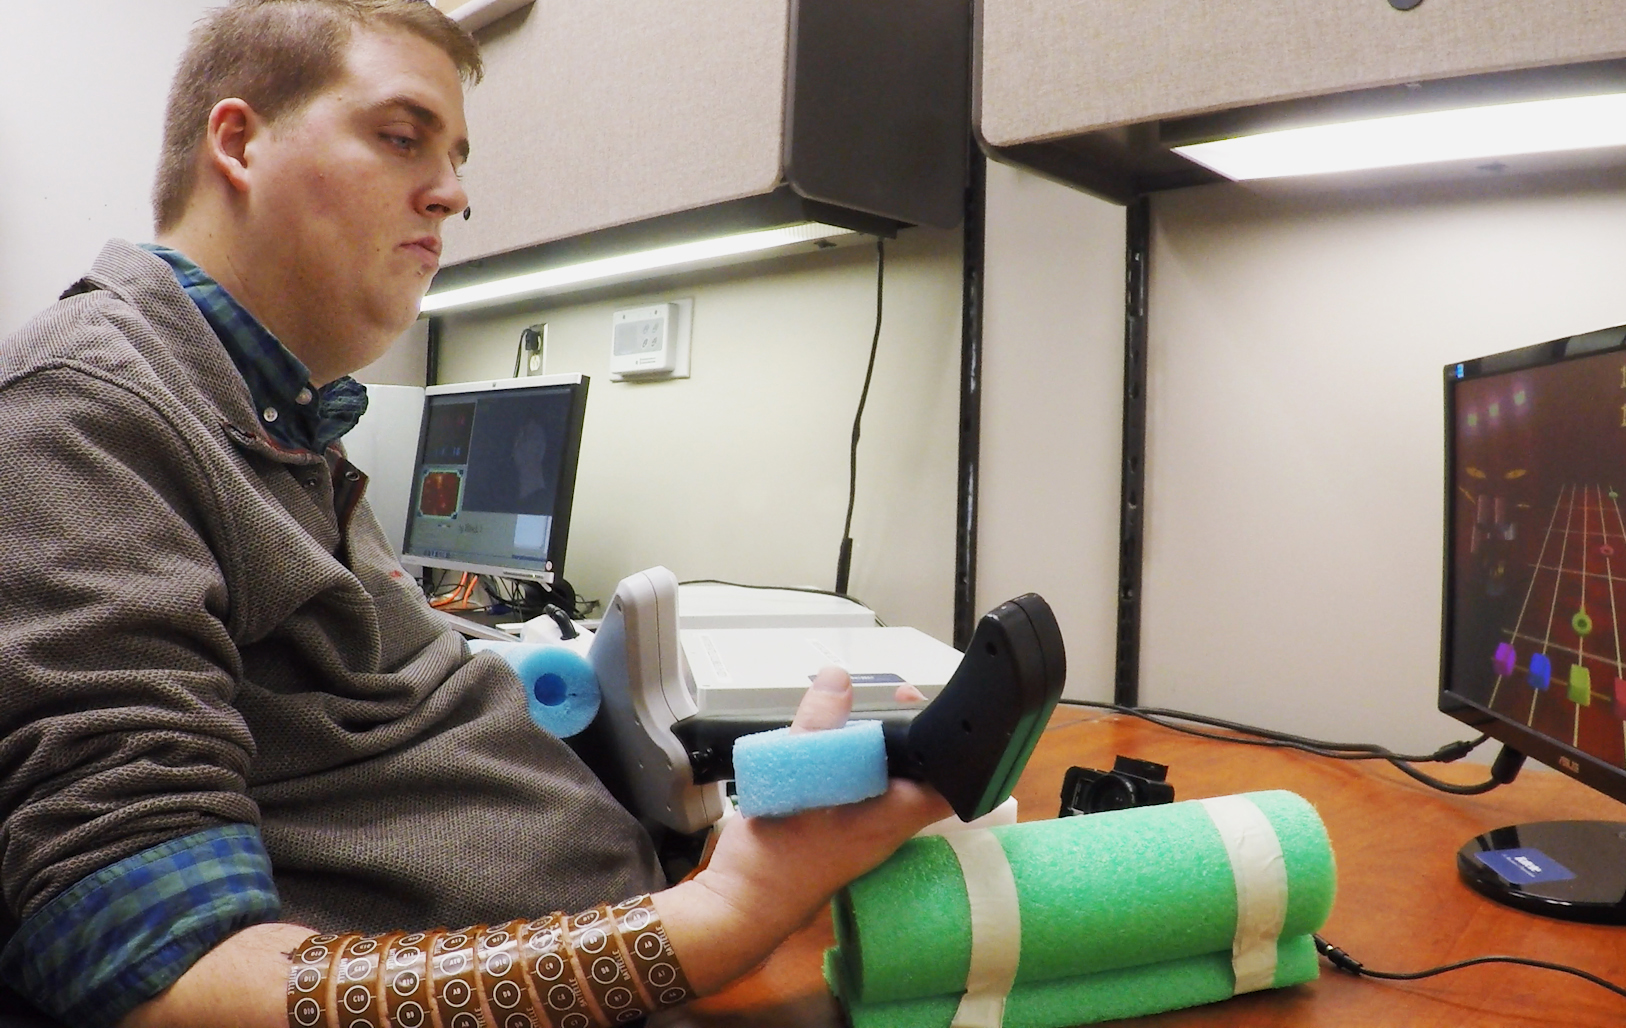 Implant help paralysed man live normal